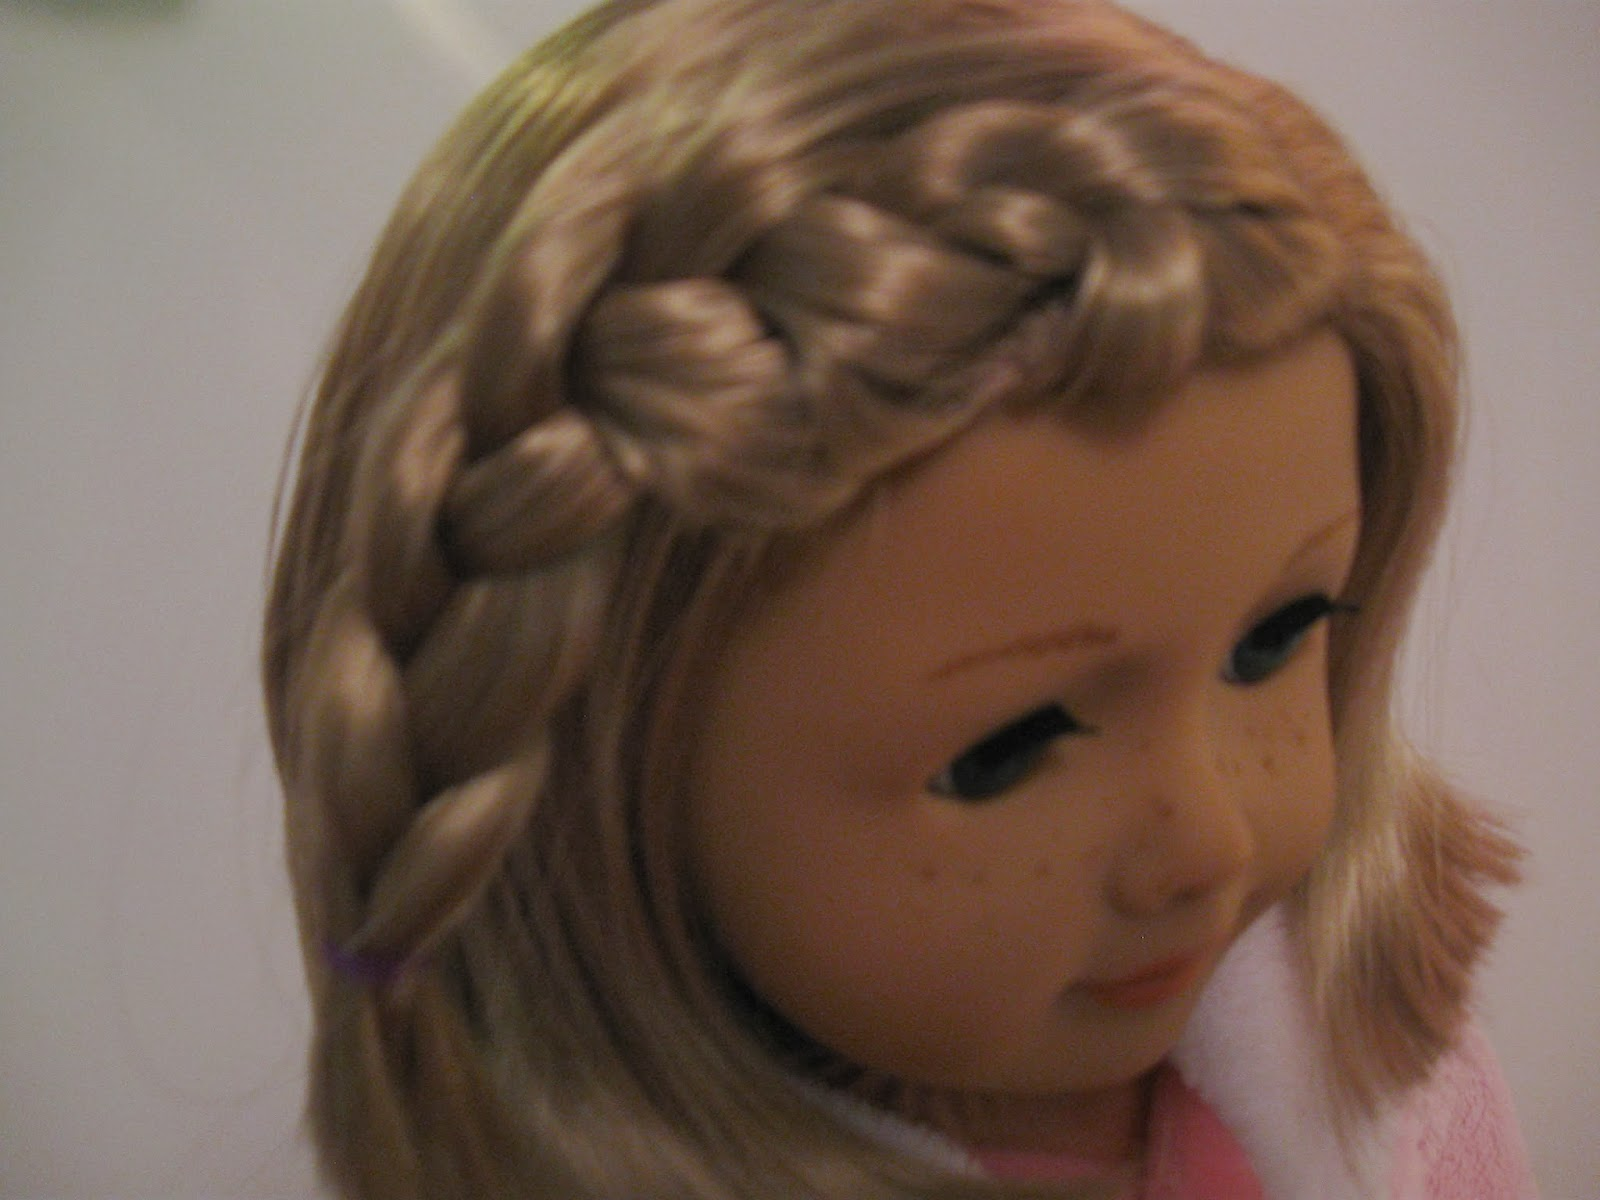 ... hairstyle on days when she wants to look a bit nicer than most days